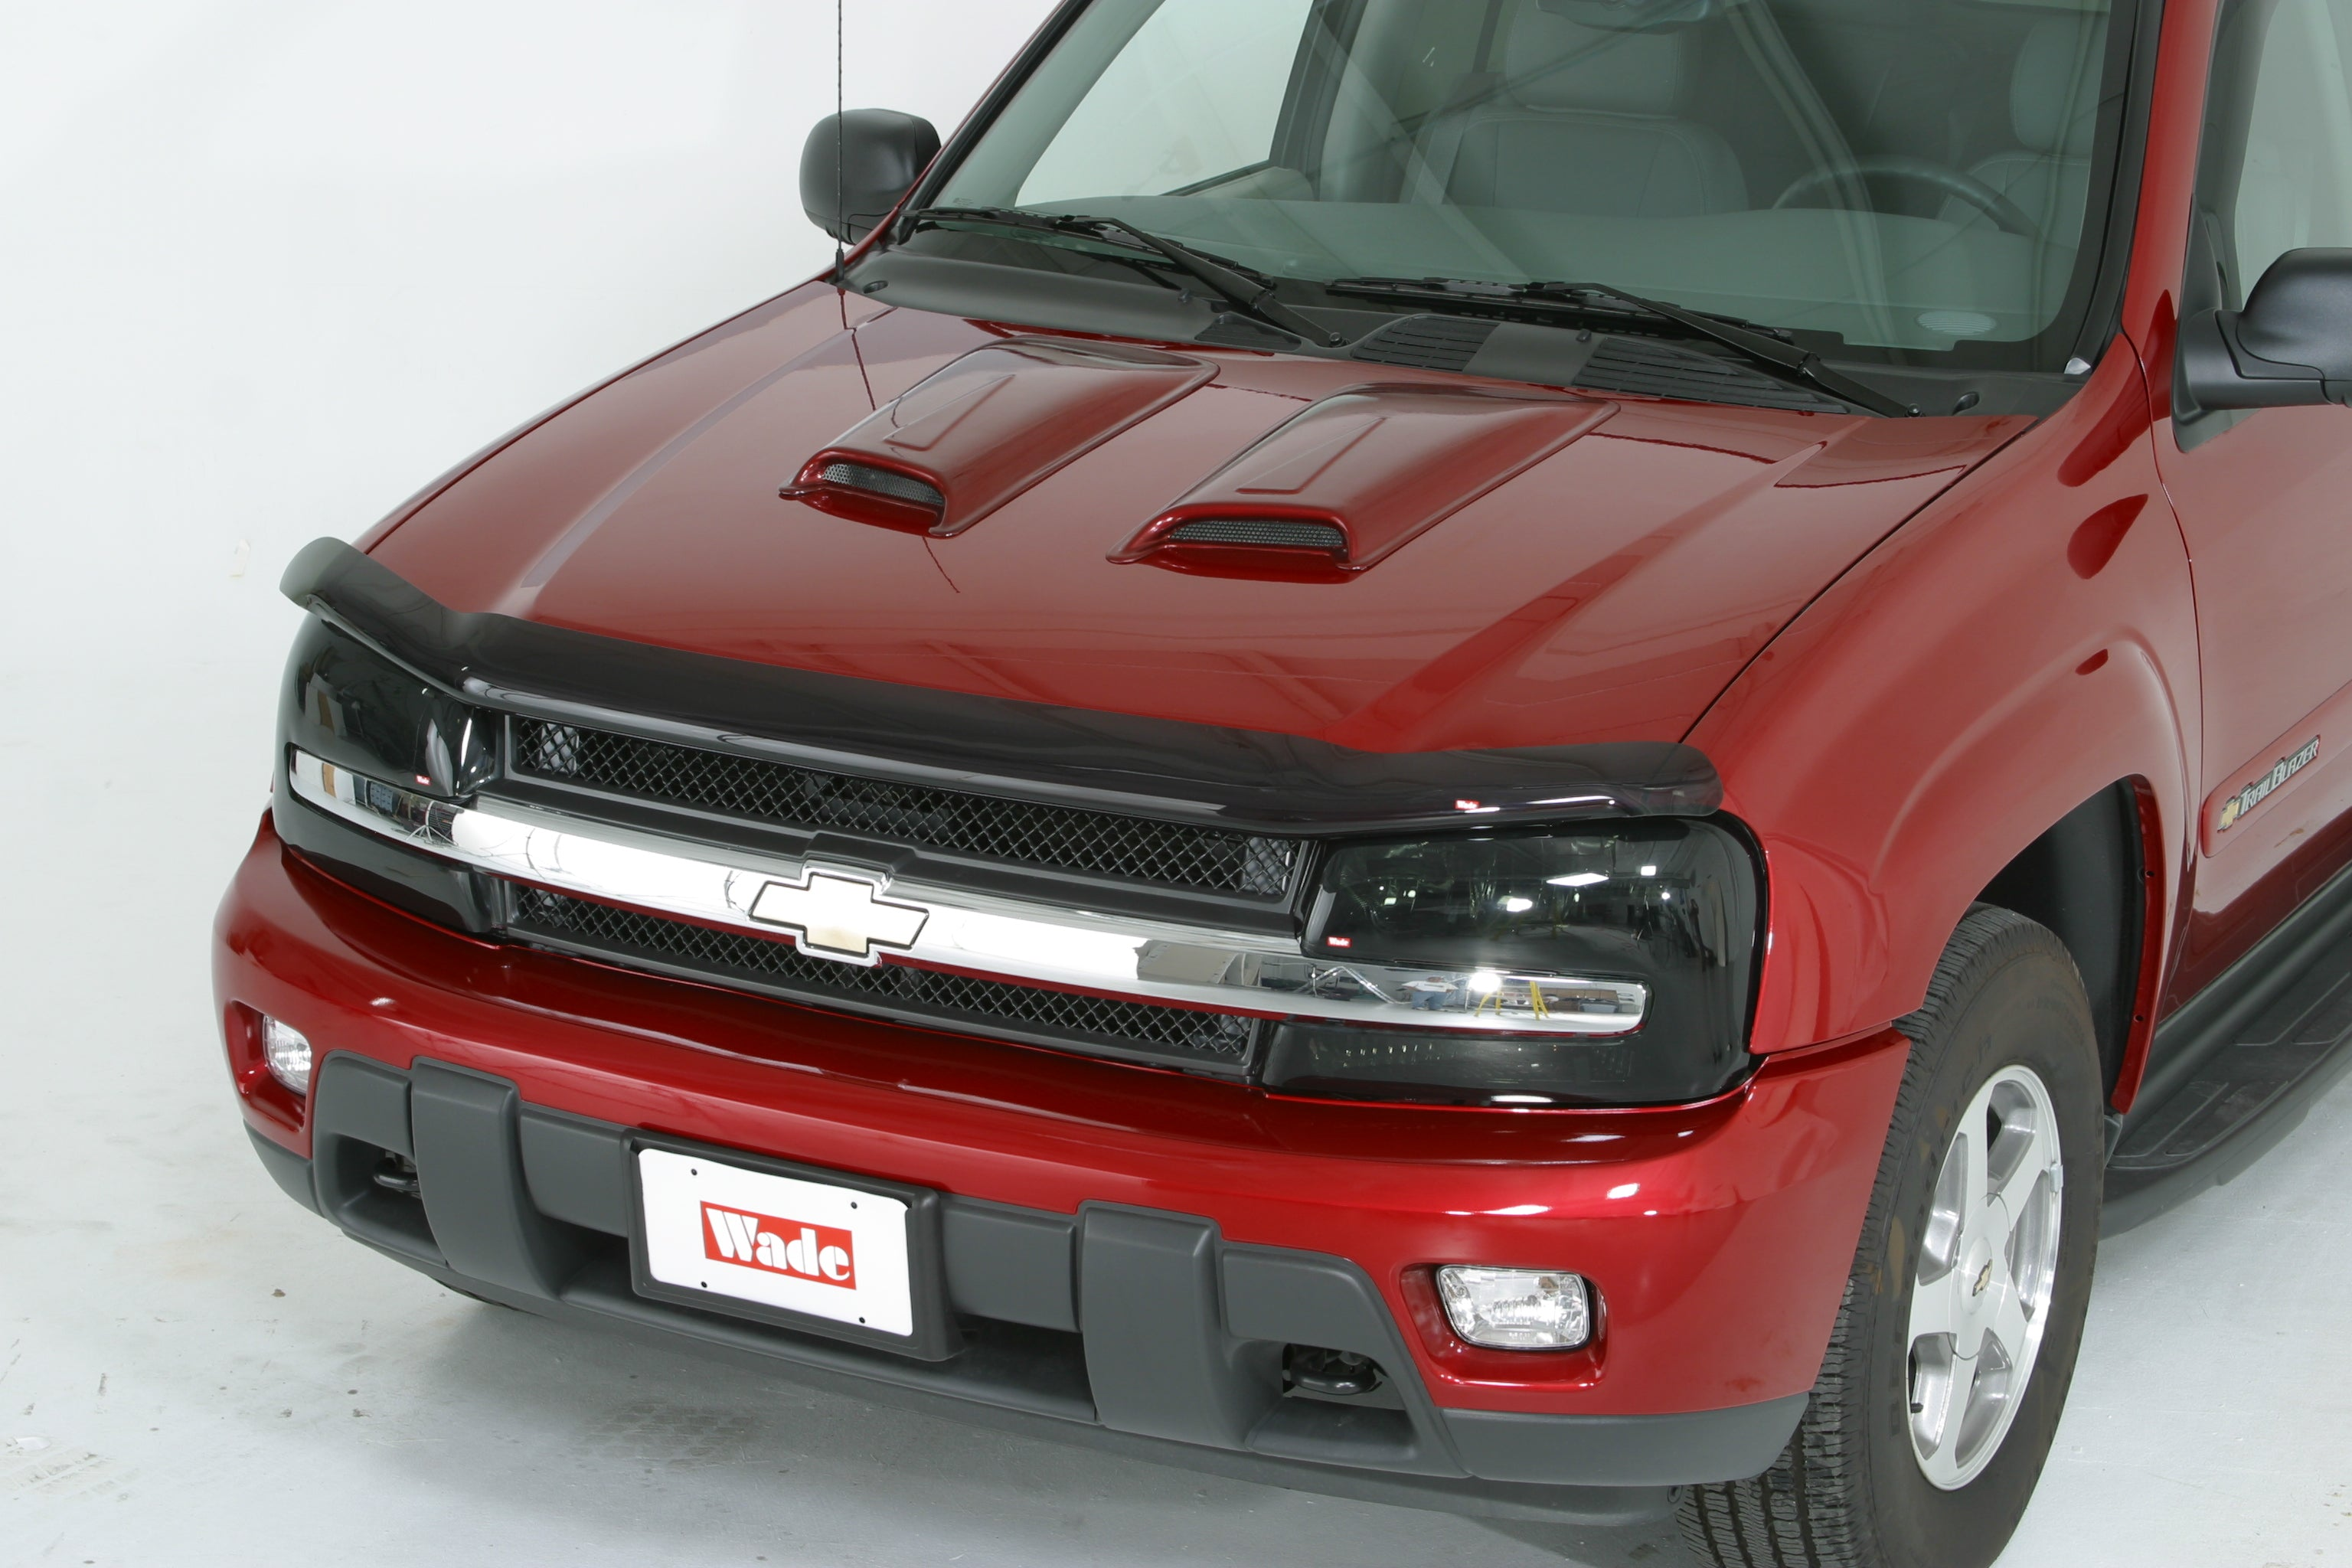 1992 Nissan Pickup 4WD (flush mount) Head Light Covers